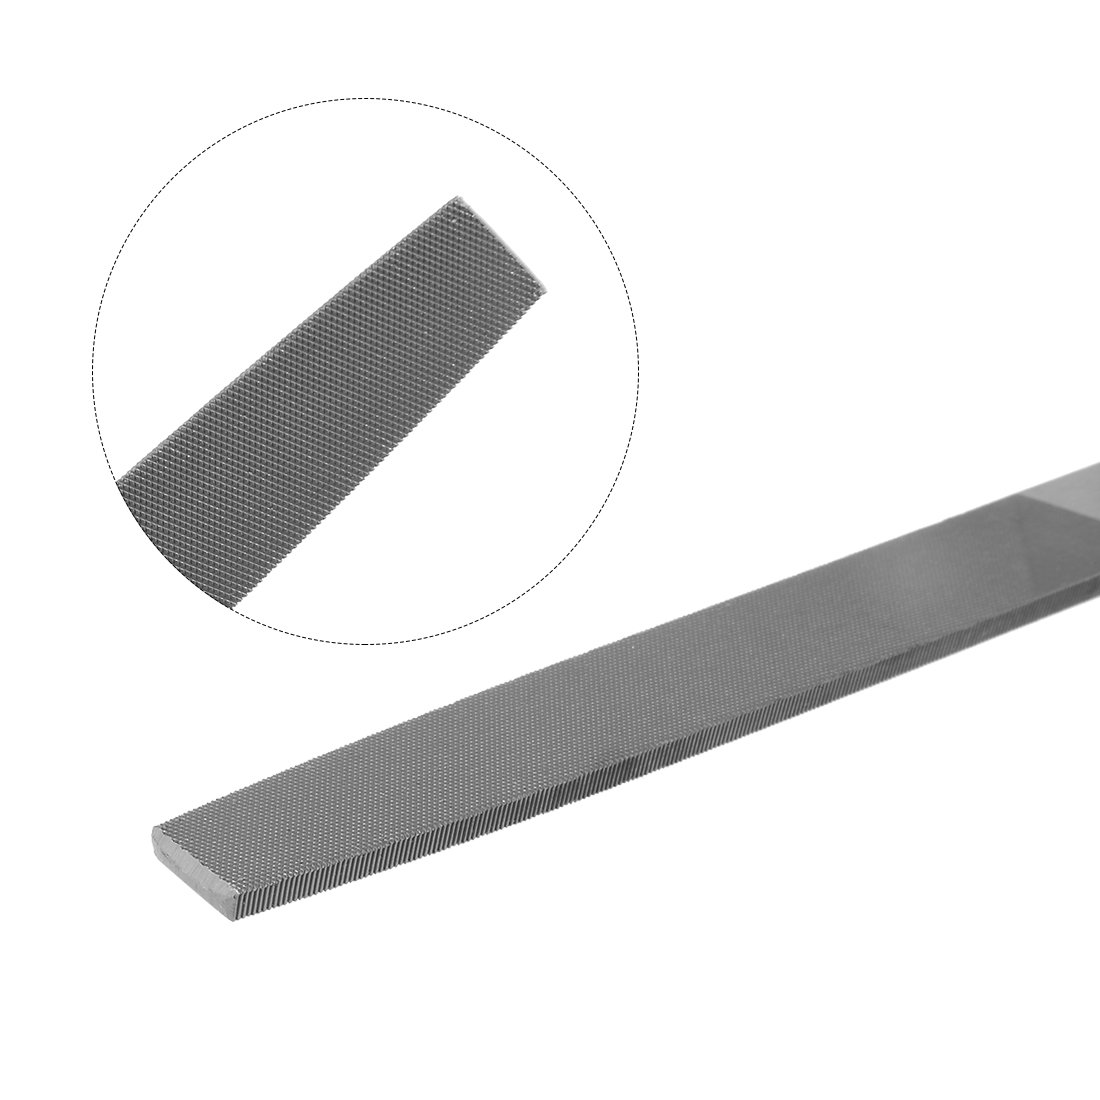 sourcingmap Second Cut Grade High Carbon Hardened Steel Flat Mill File with Rubber Hand Grip Handle 10-Inch